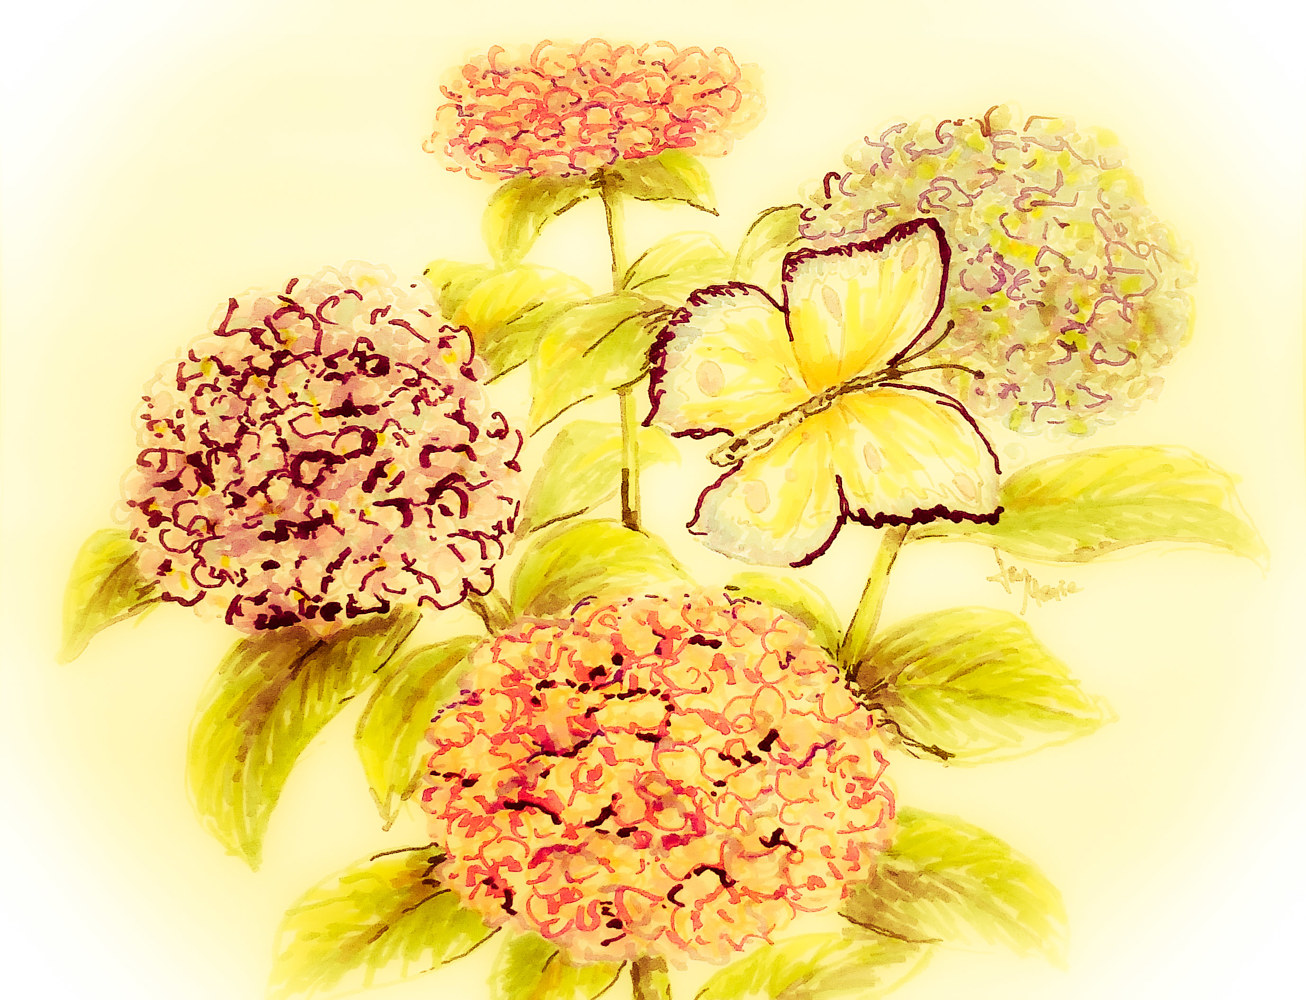 Hydrangeas Fall Version by Jan Wirth